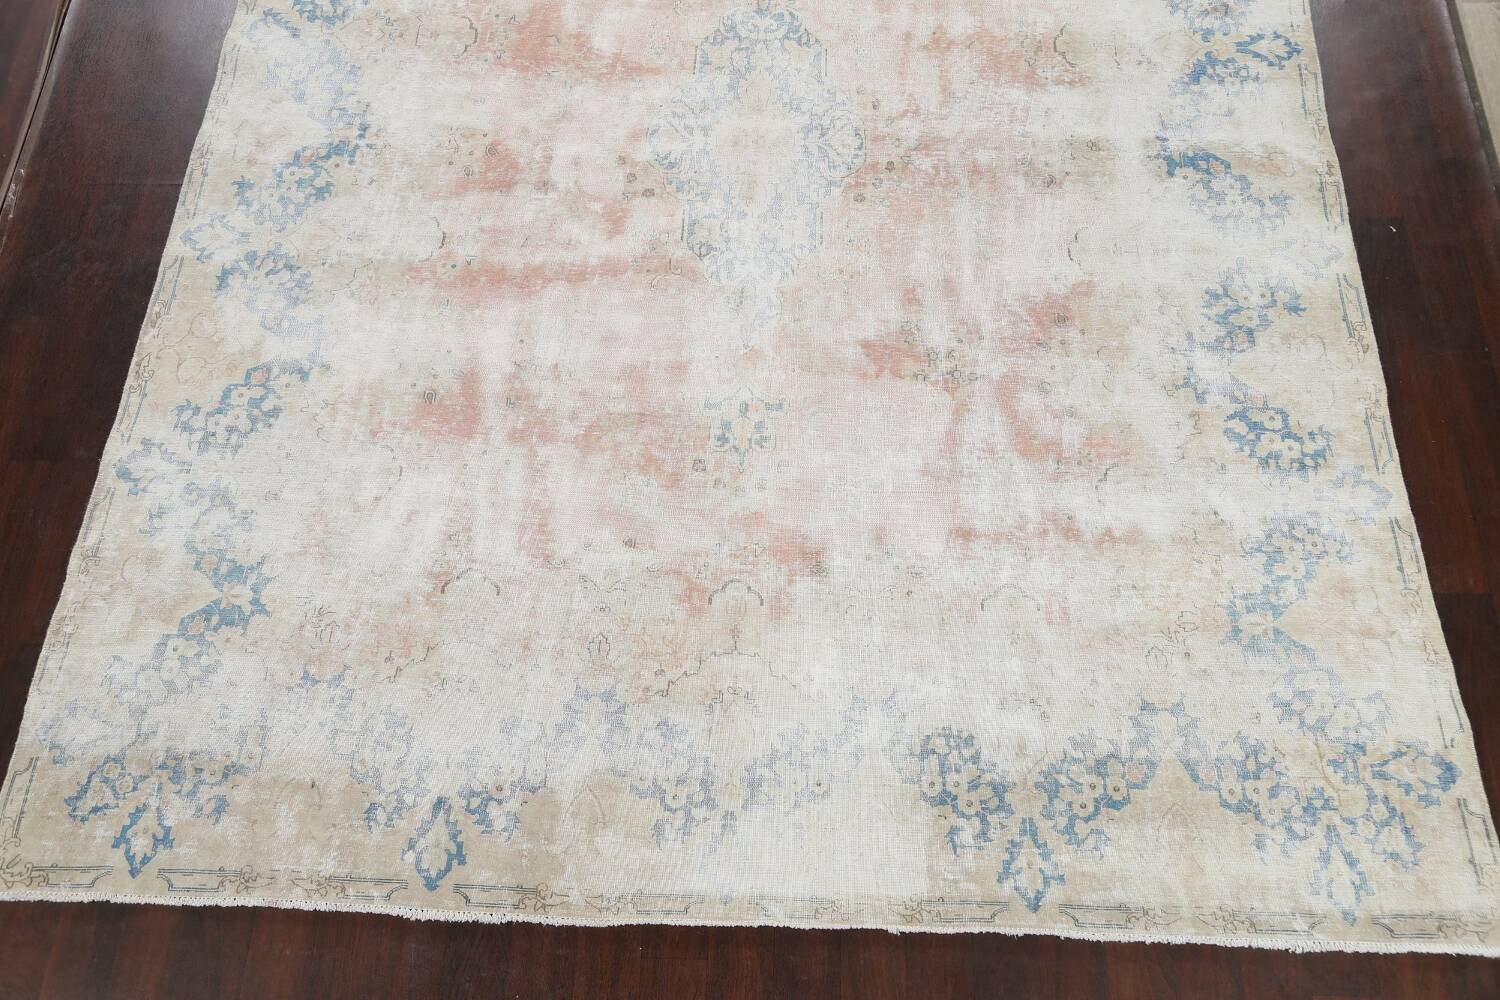 Antique Muted Distressed Kerman Persian Area Rug 10x13 image 8